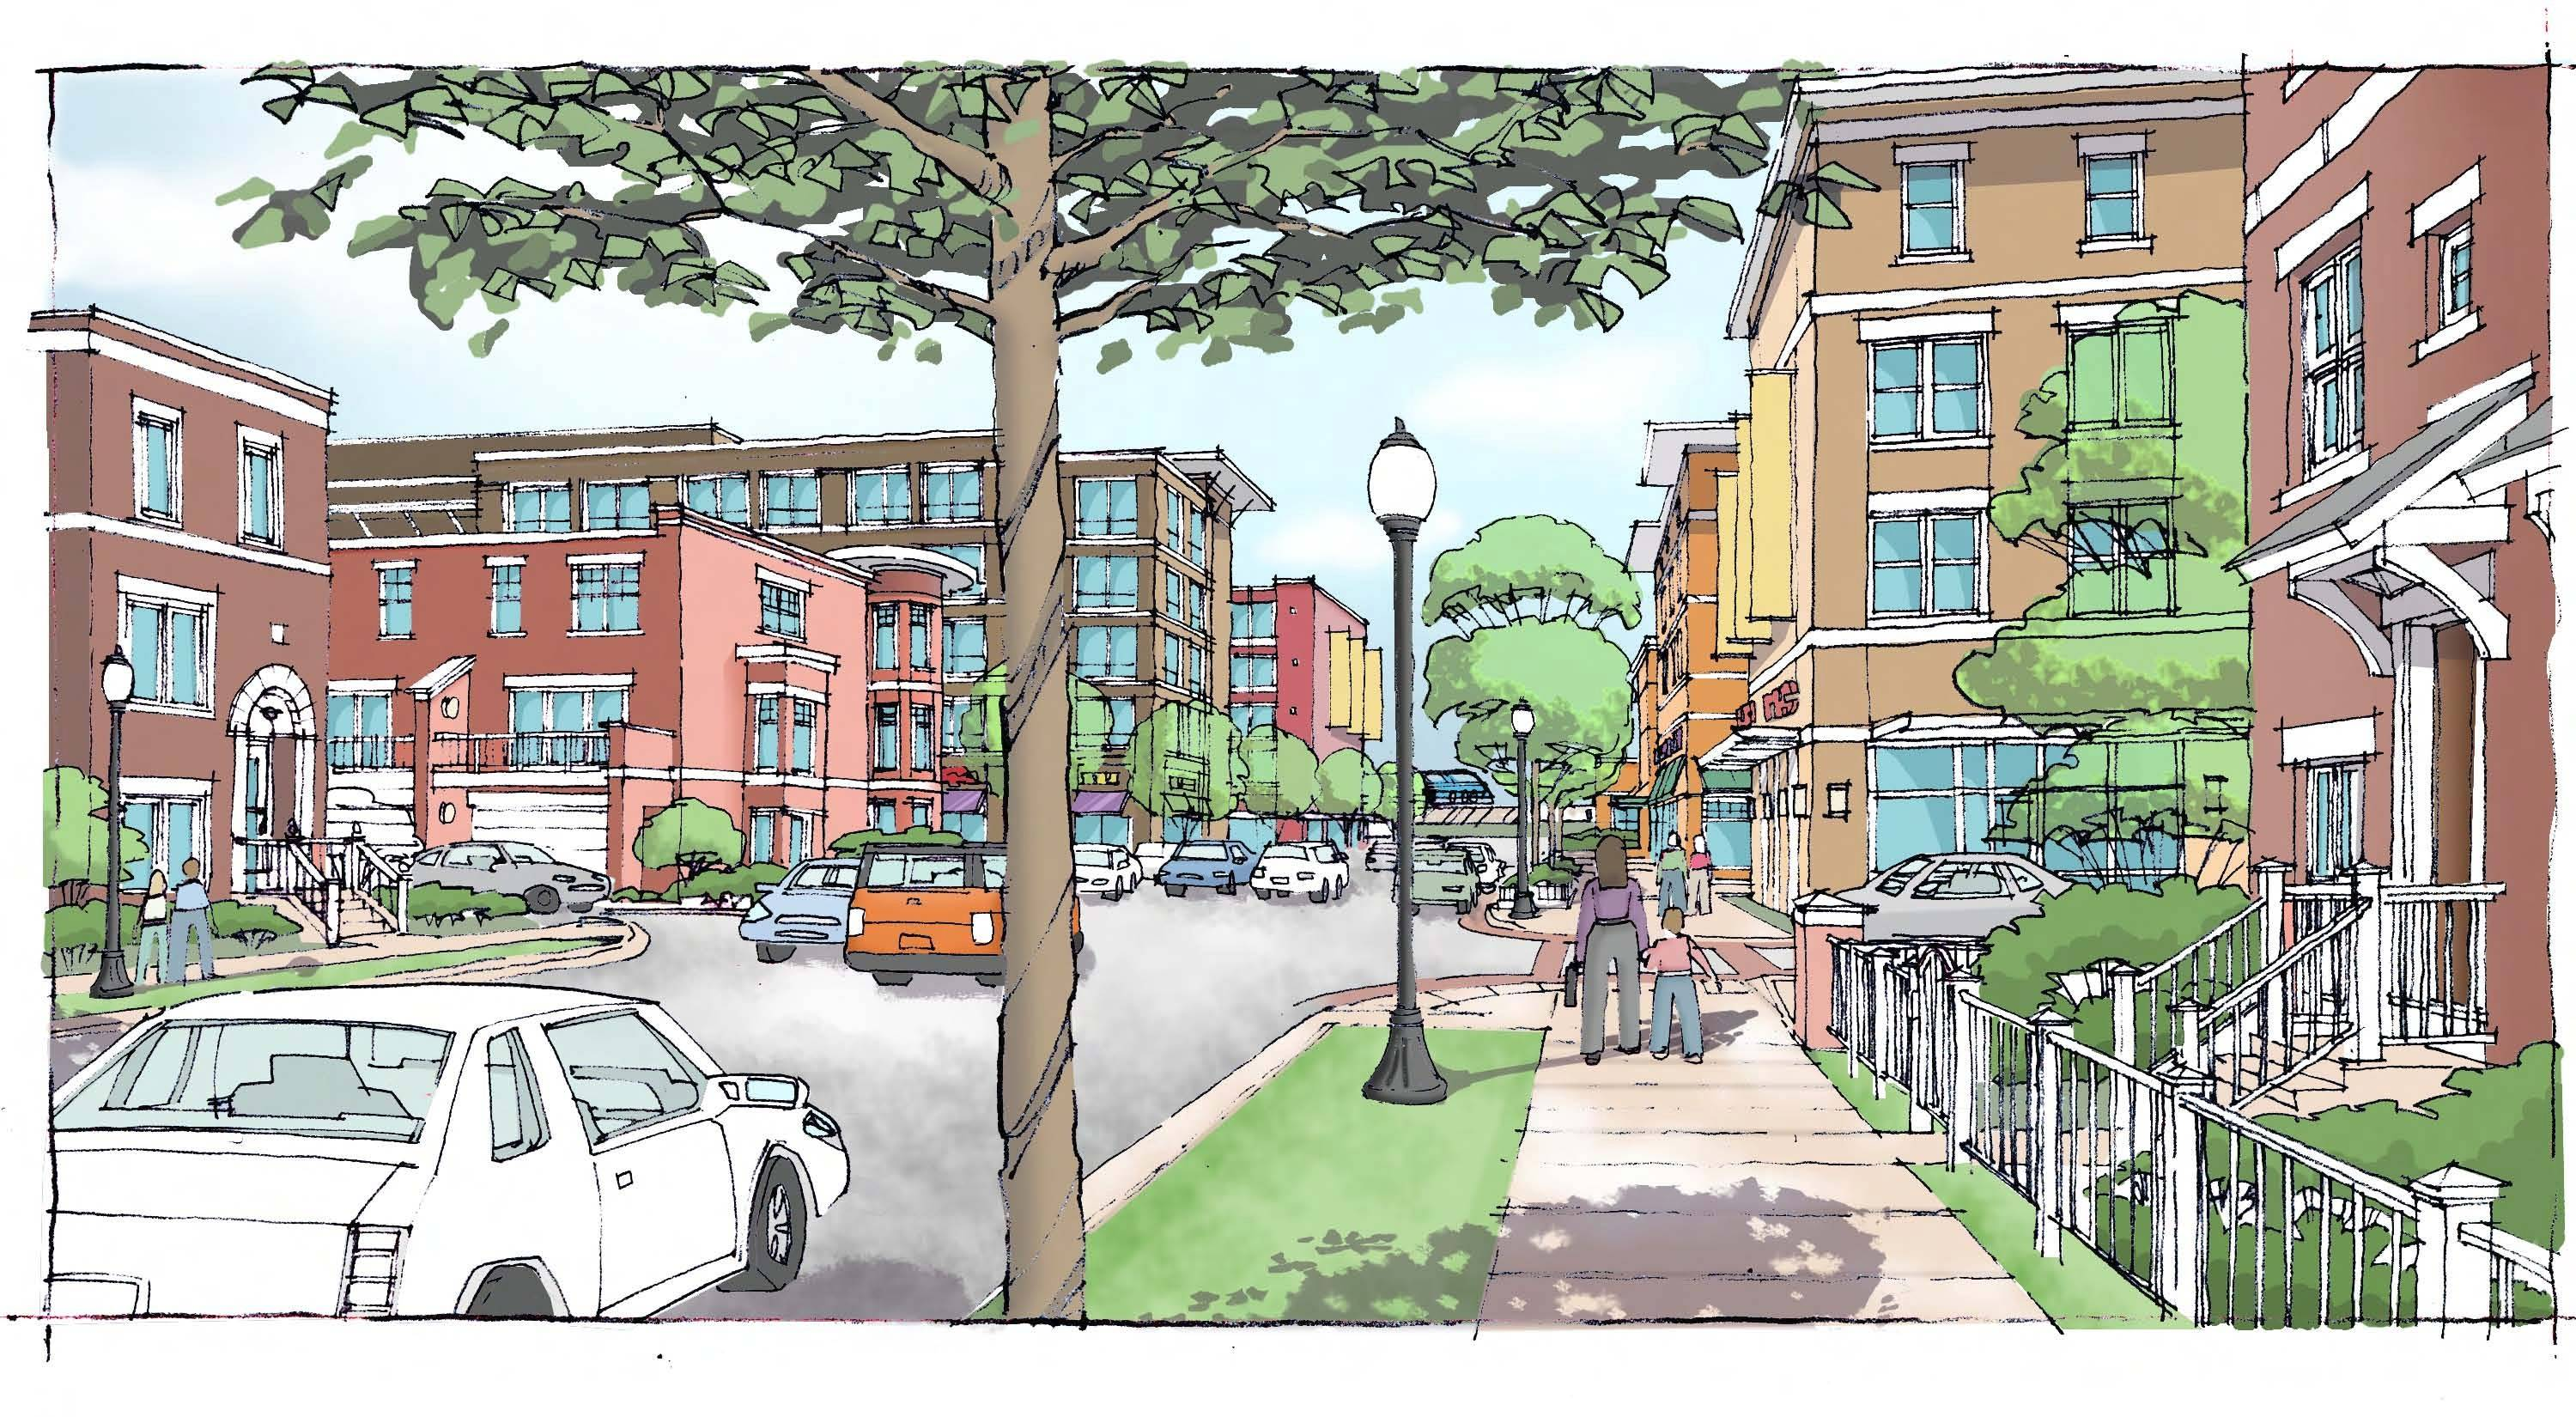 Proposed redevelopment plans for the Hickory-Kensington area in Arlington Heights include a mix of retail and commercial property. The village will host a public meeting tonight on the project and a tax increment financing district intended to support it.